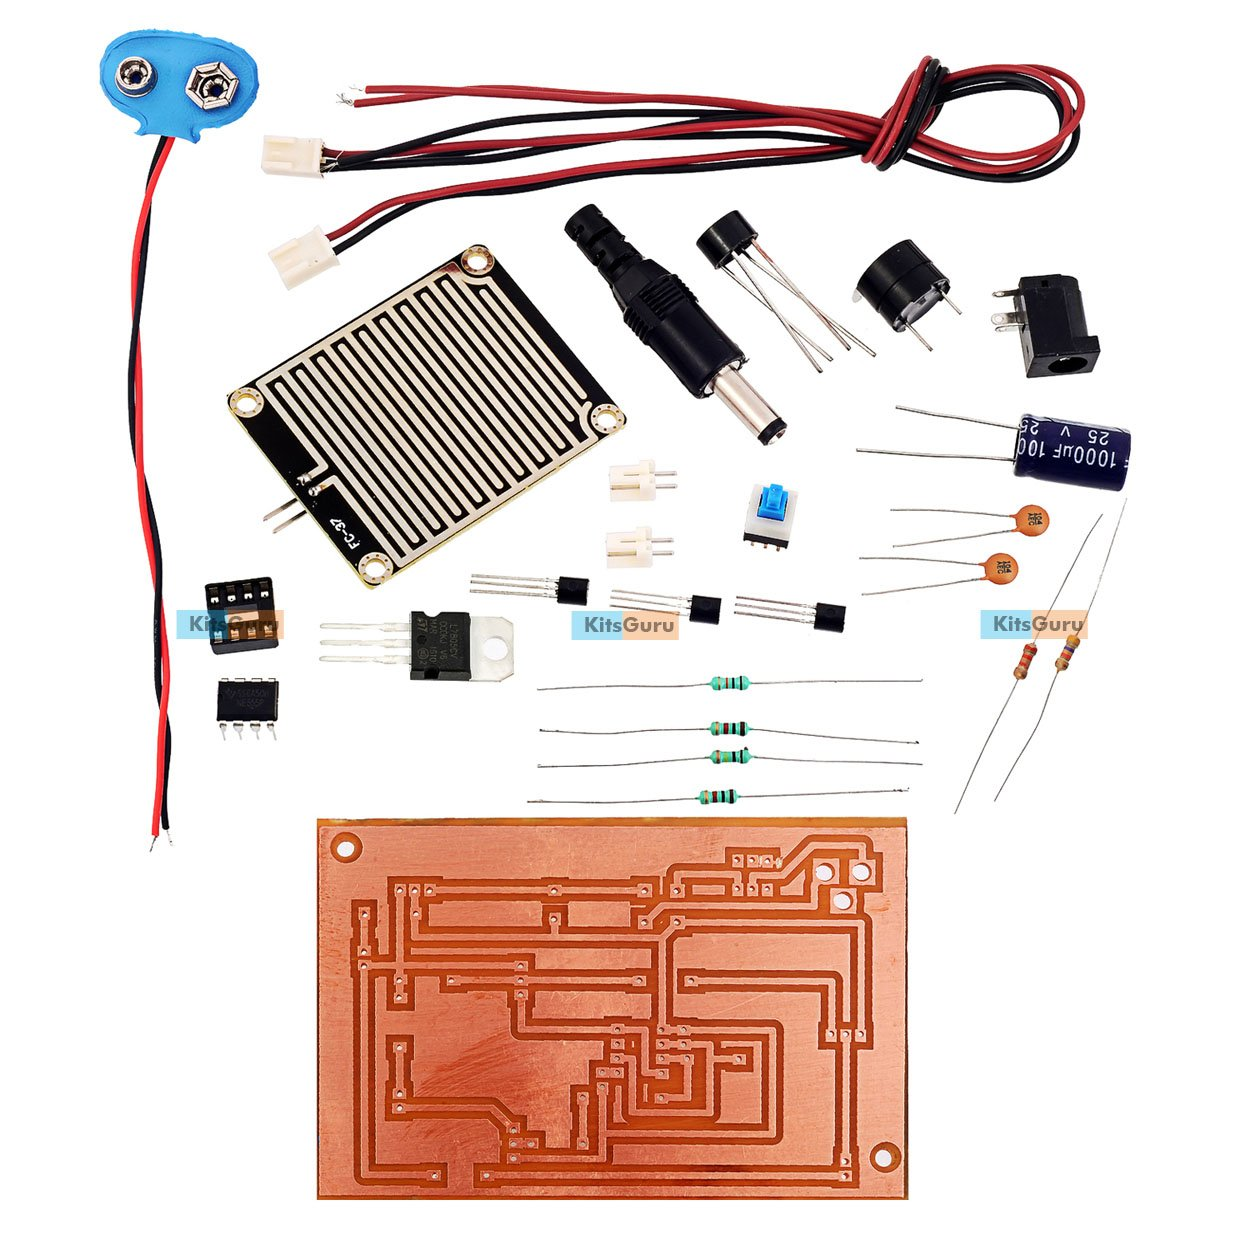 Diy Kit Rain Alarm Lgkt079 Simple Circuit Projects Project And Diagram Using 555 Timer Ic